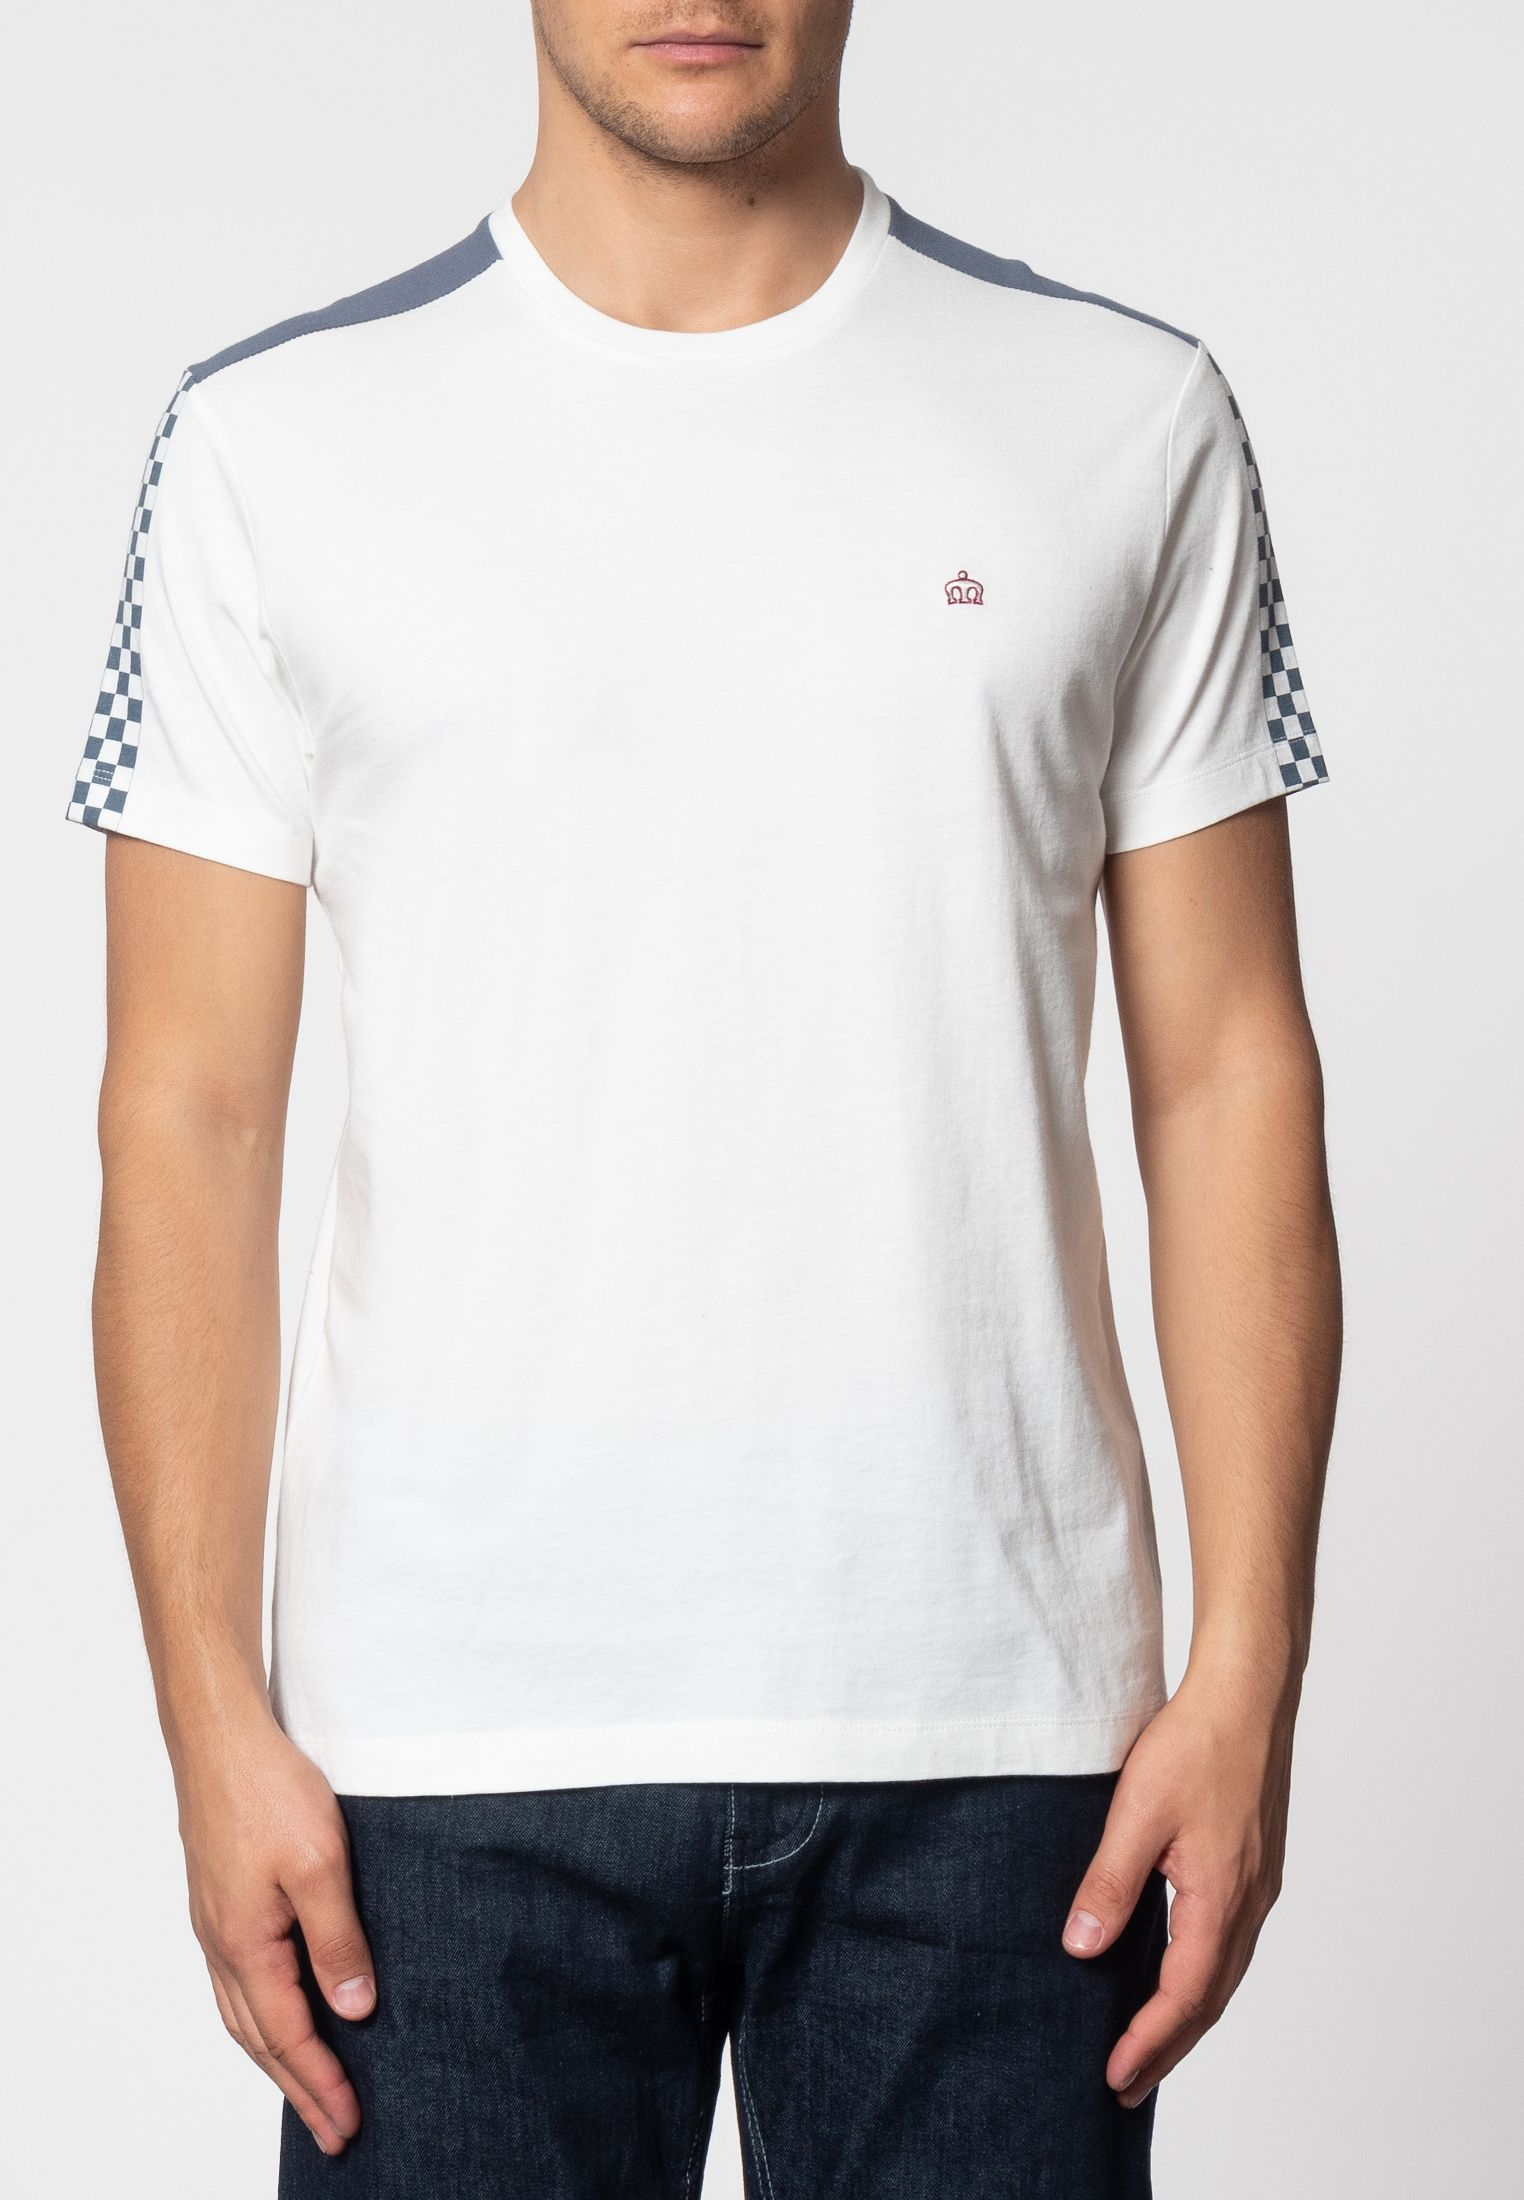 Hillgate Ska Print T-Shirt With Short Sleeves And Round Neck Collar In Off White